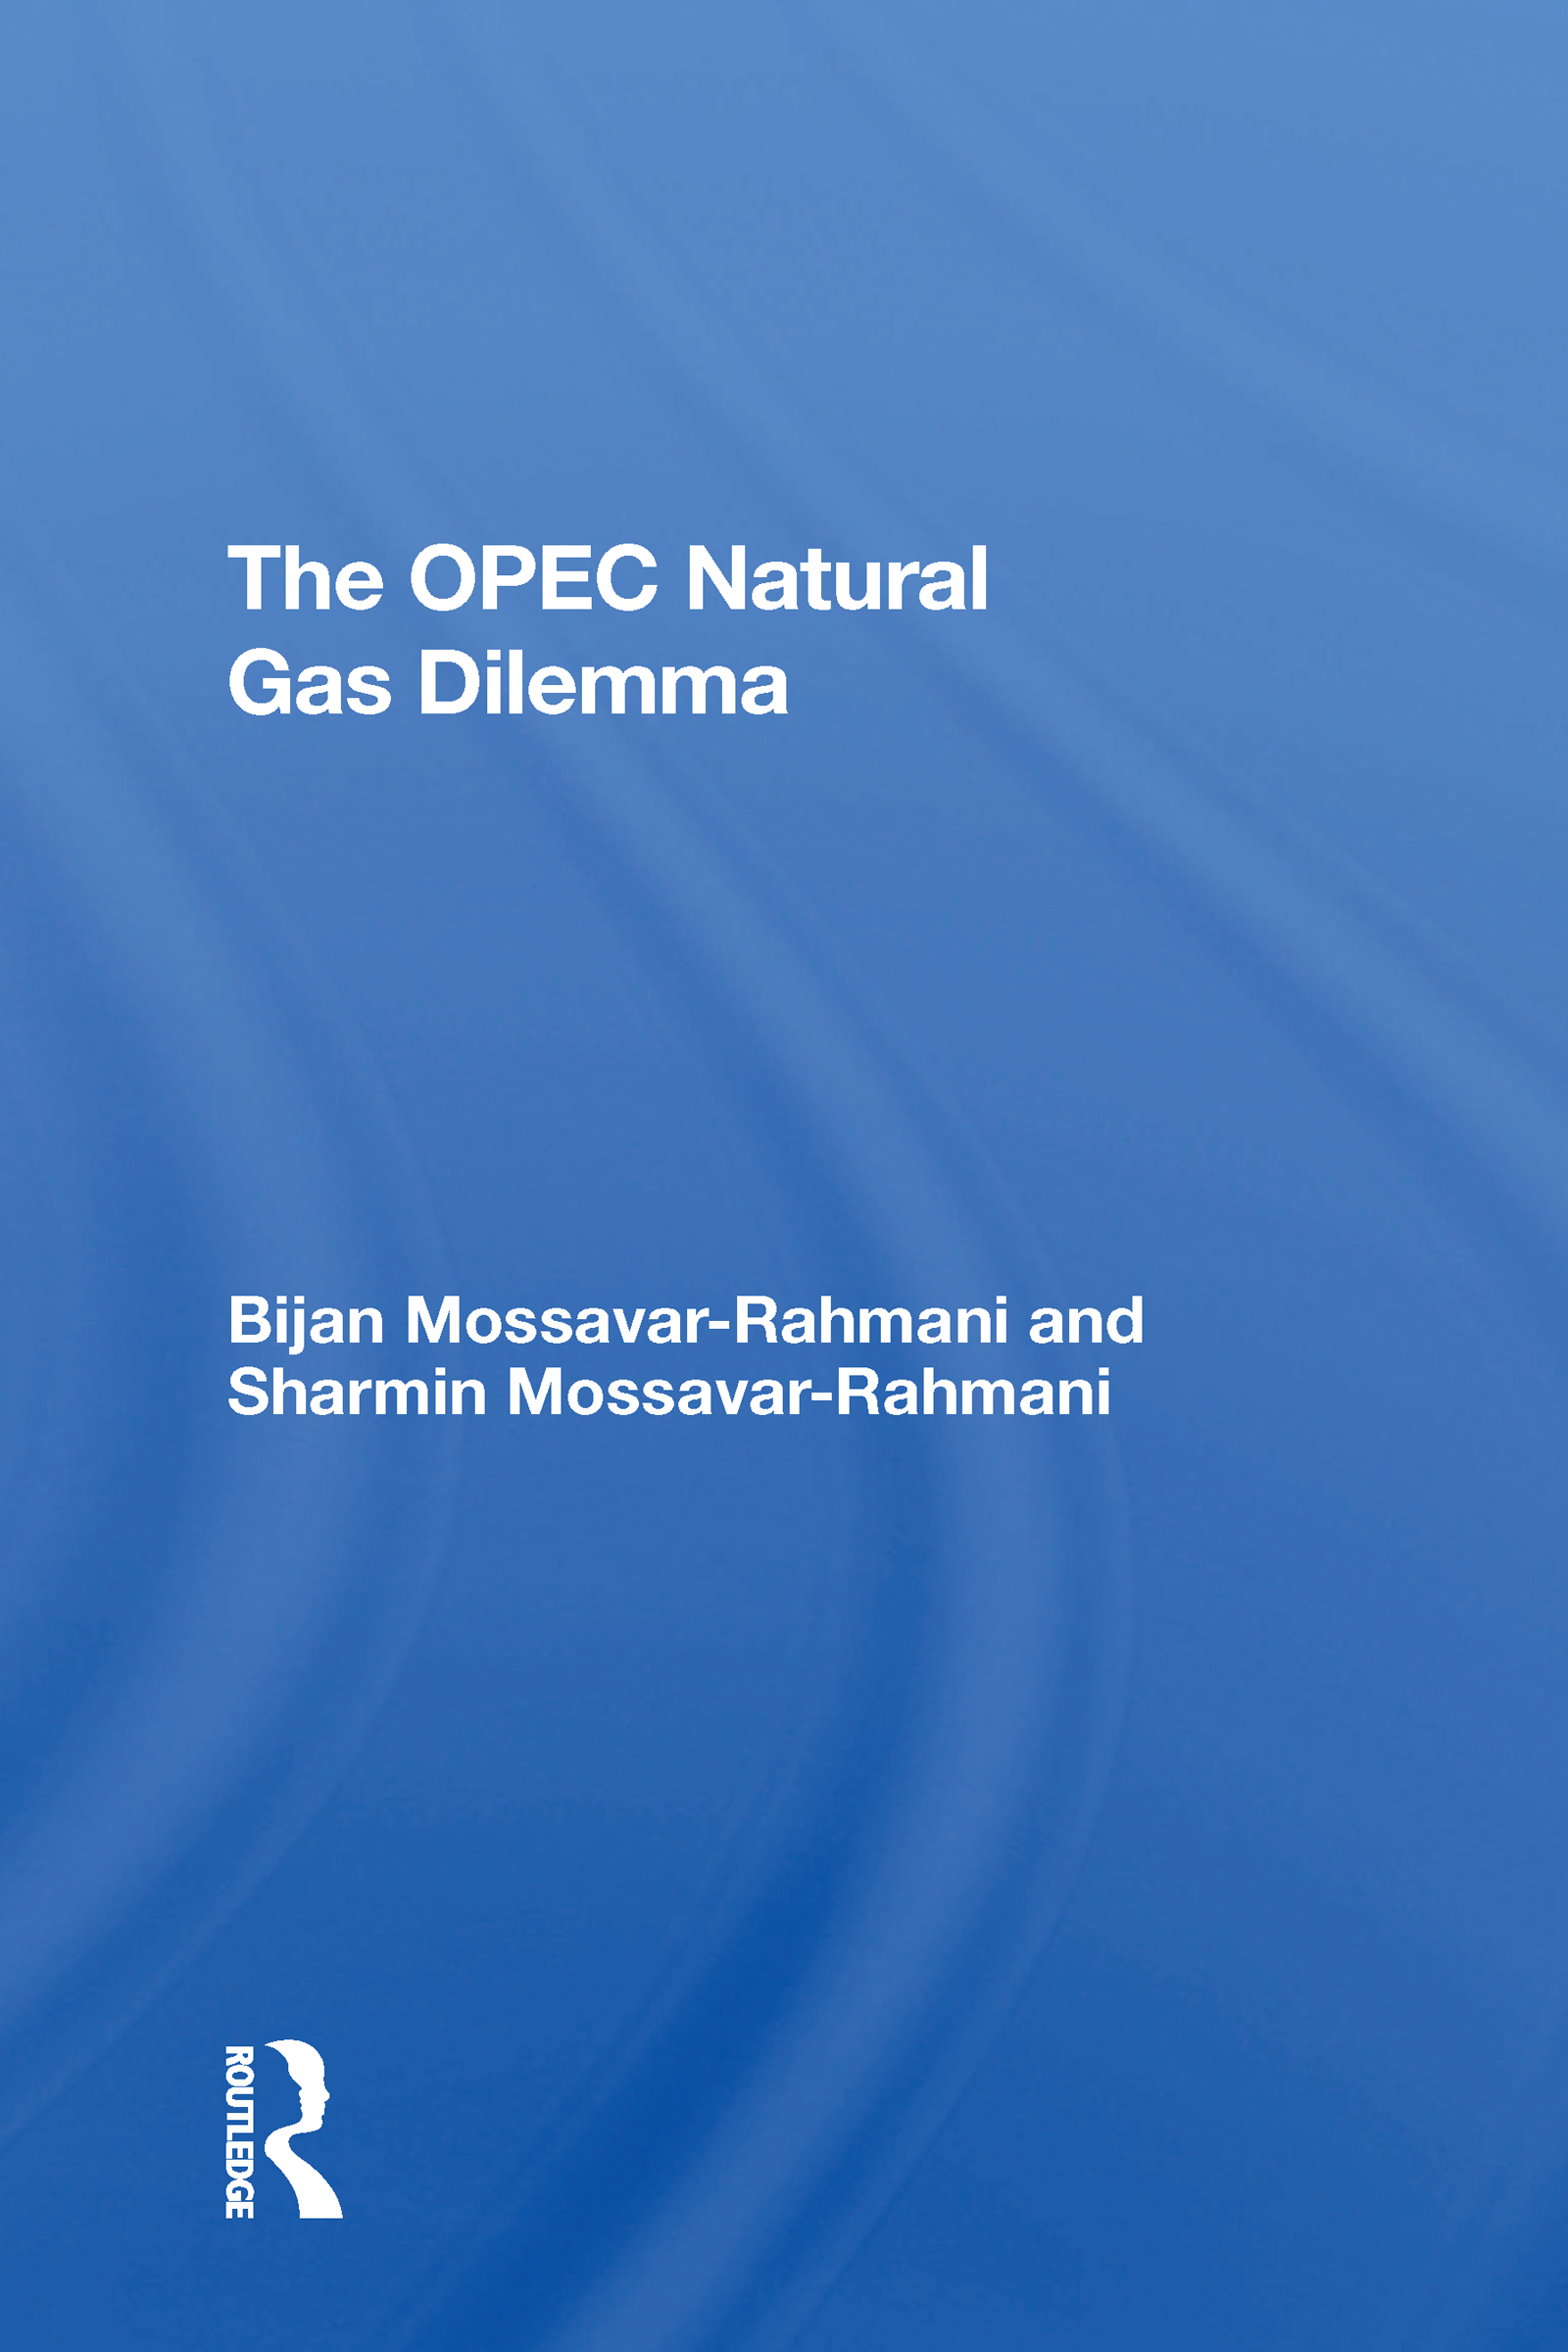 The Opec Natural Gas Dilemma